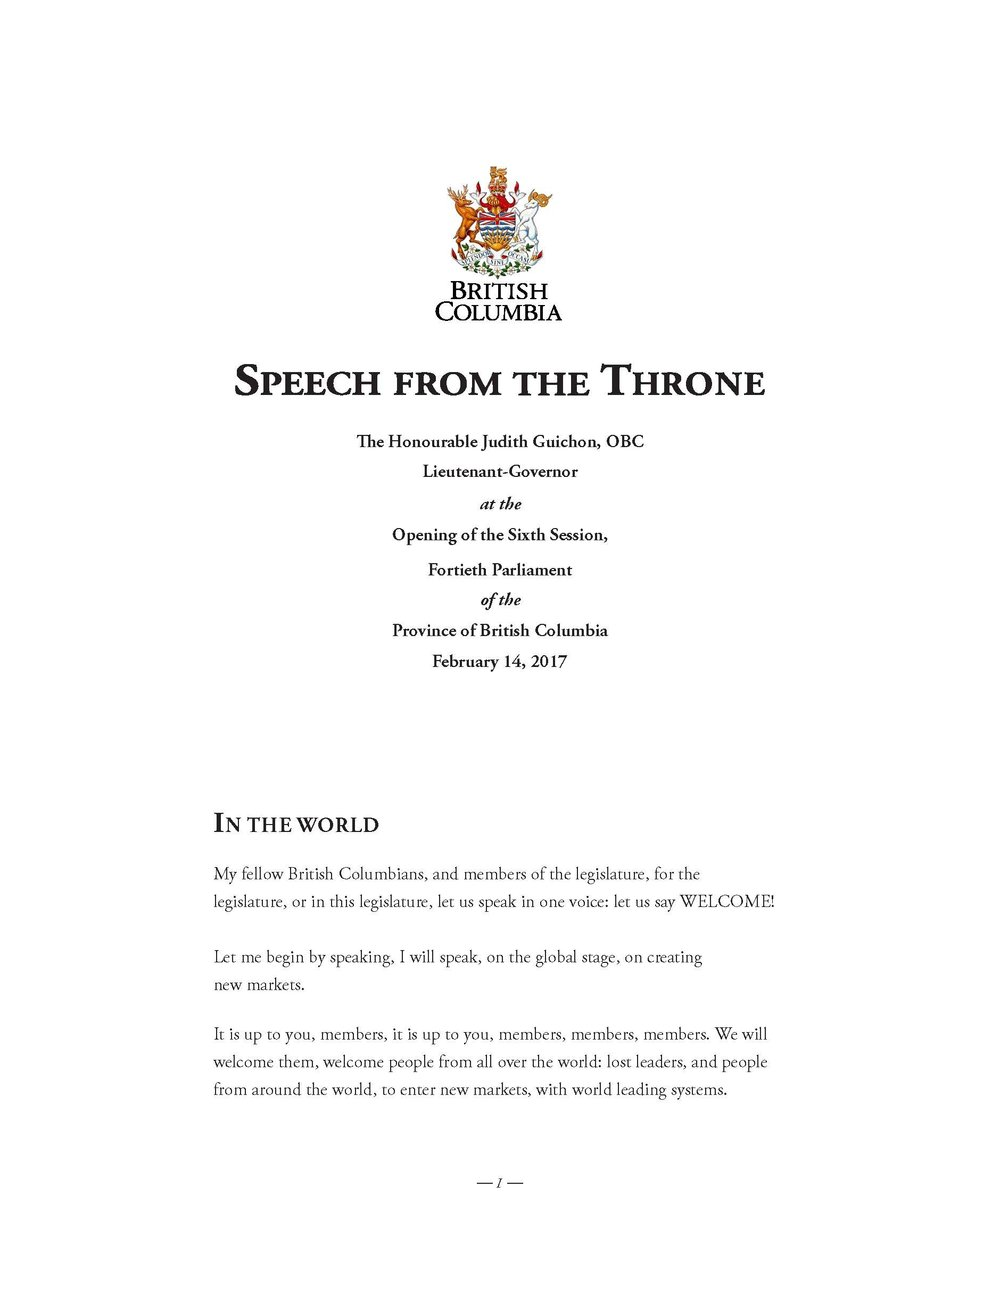 Speech from the Throne 2017_Page_01.jpg